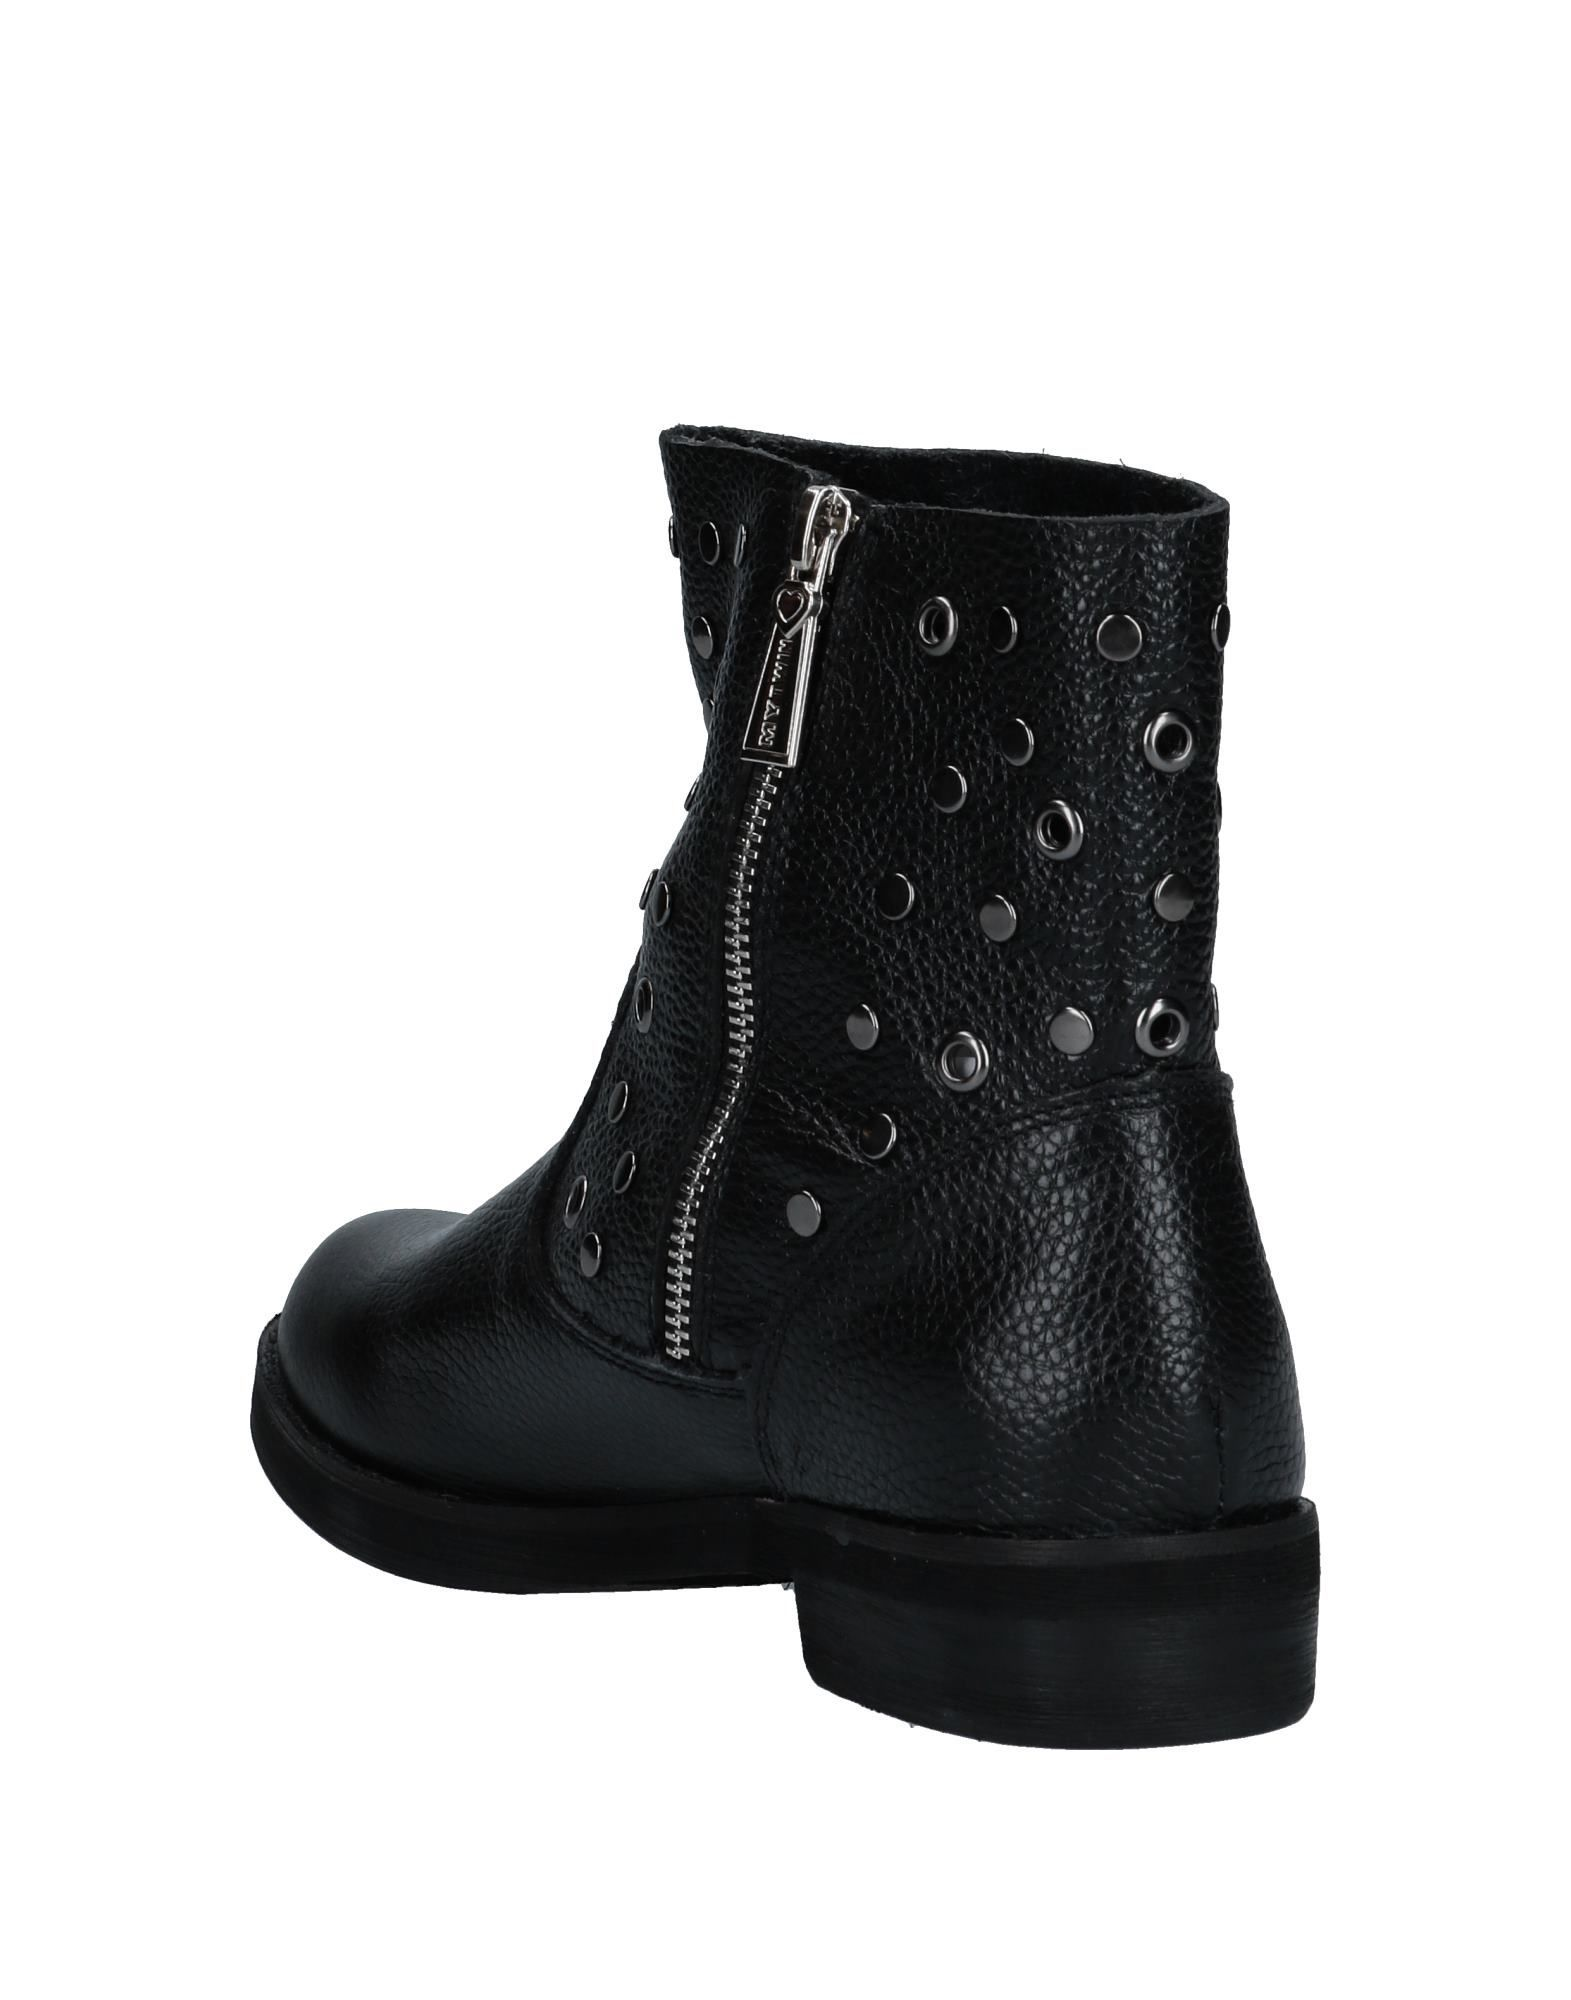 My Twin Twinset Women's Ankle Boots Black Leather